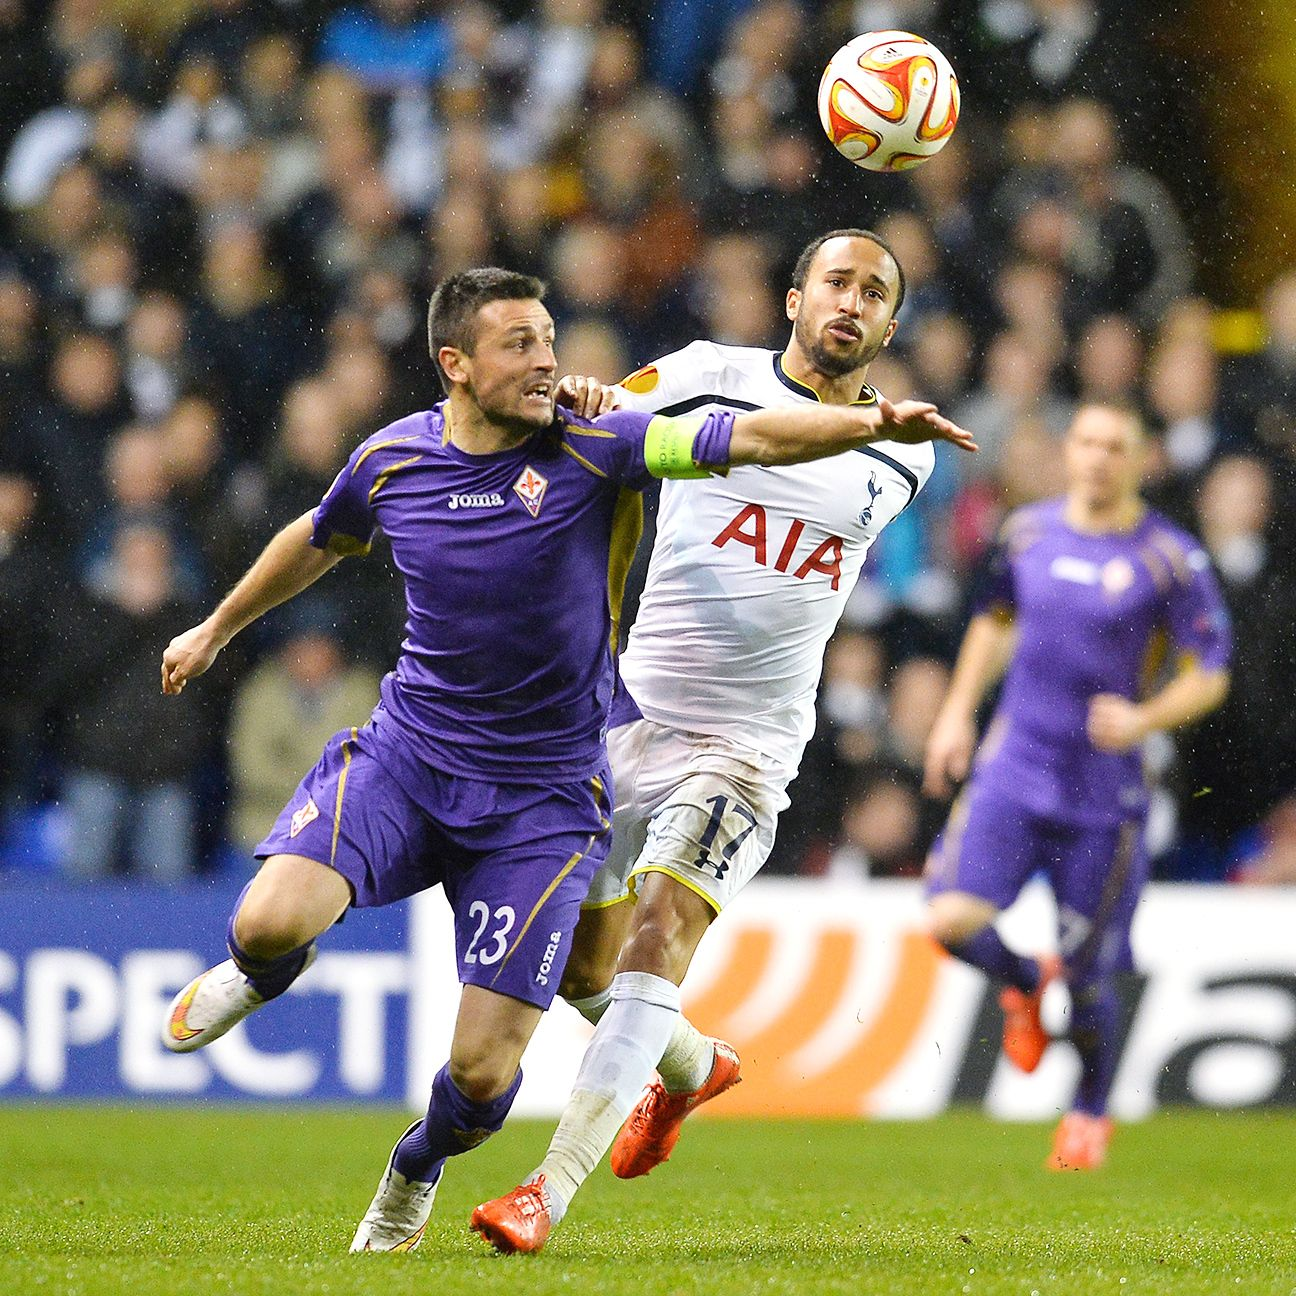 Andros Townsend, right, was a handful for the Fiorentina defence in the first half.